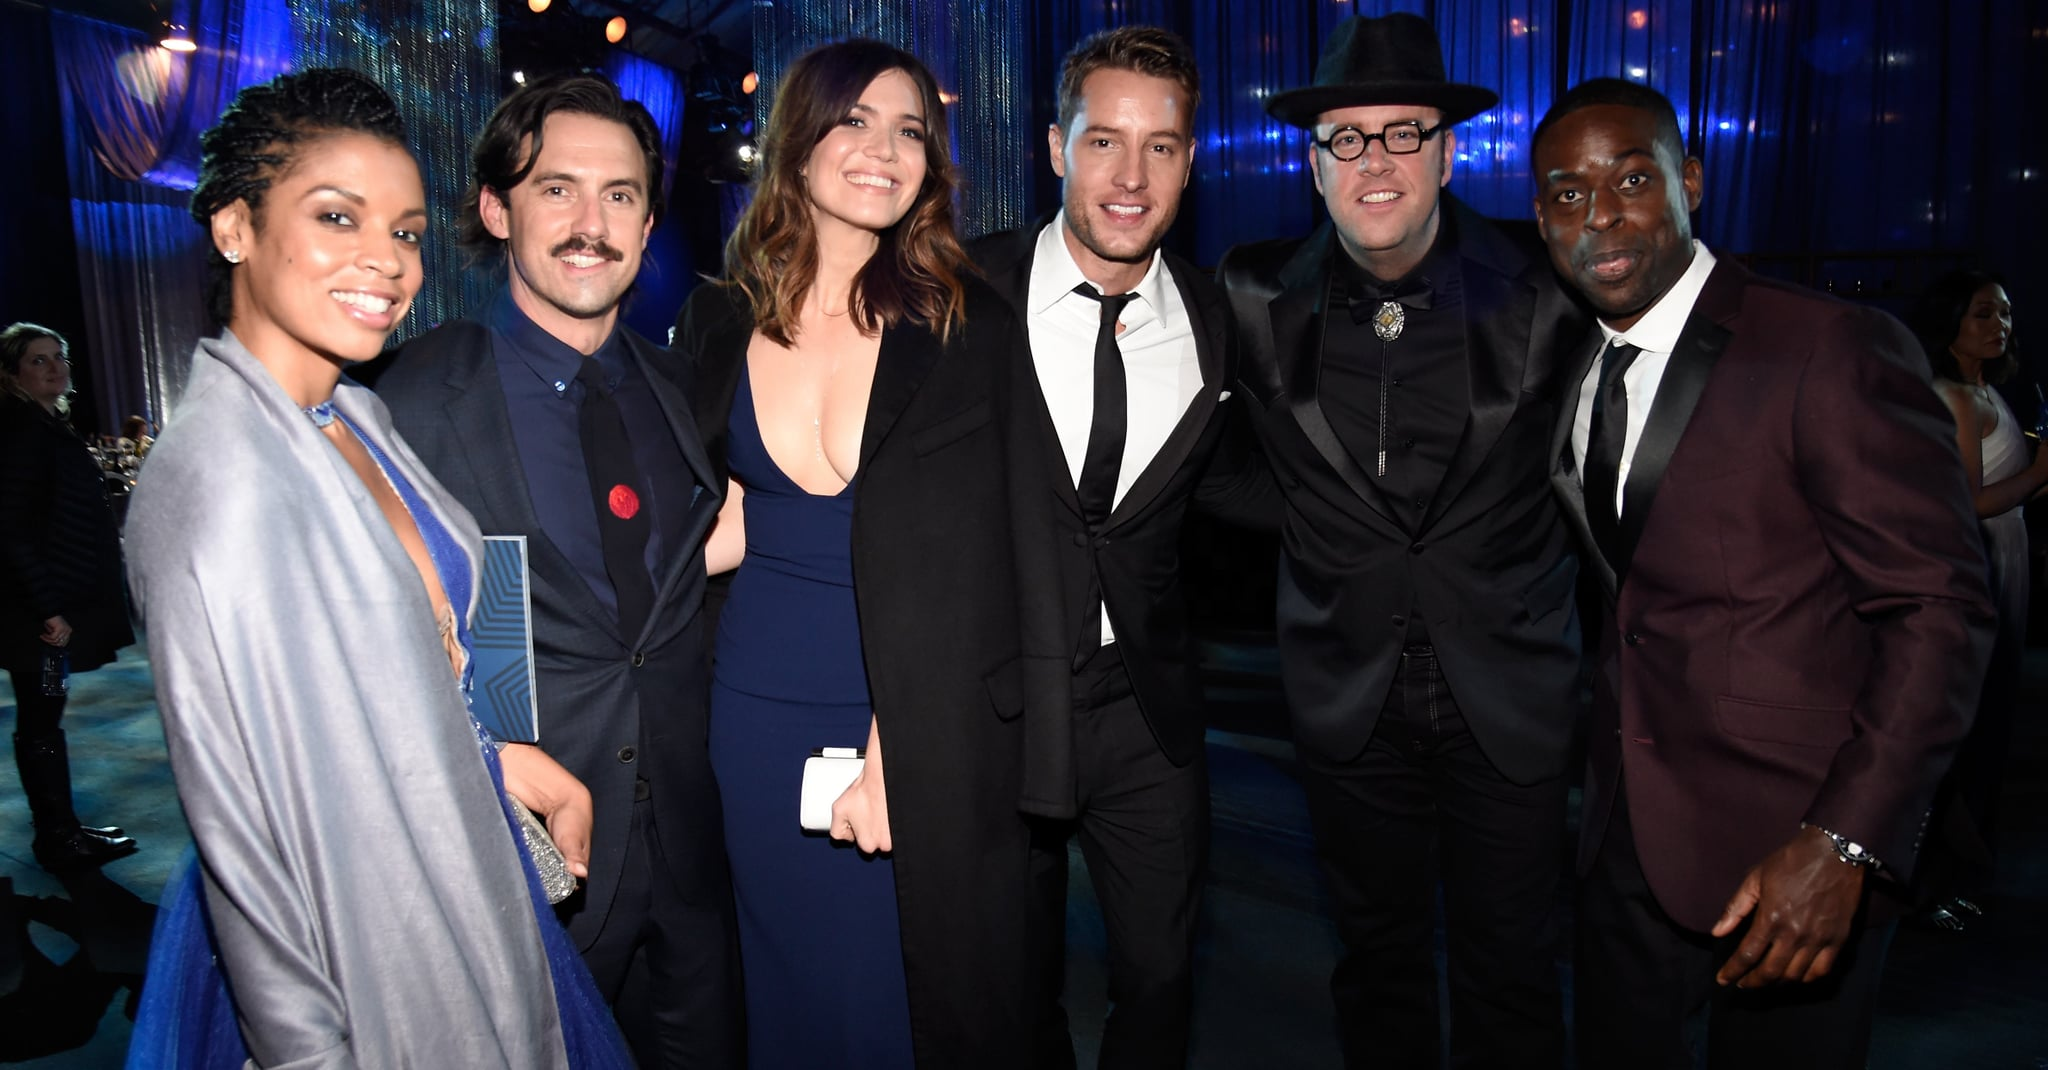 qlabc This Is Us Cast Reactions to Golden Globe Nominations 2017